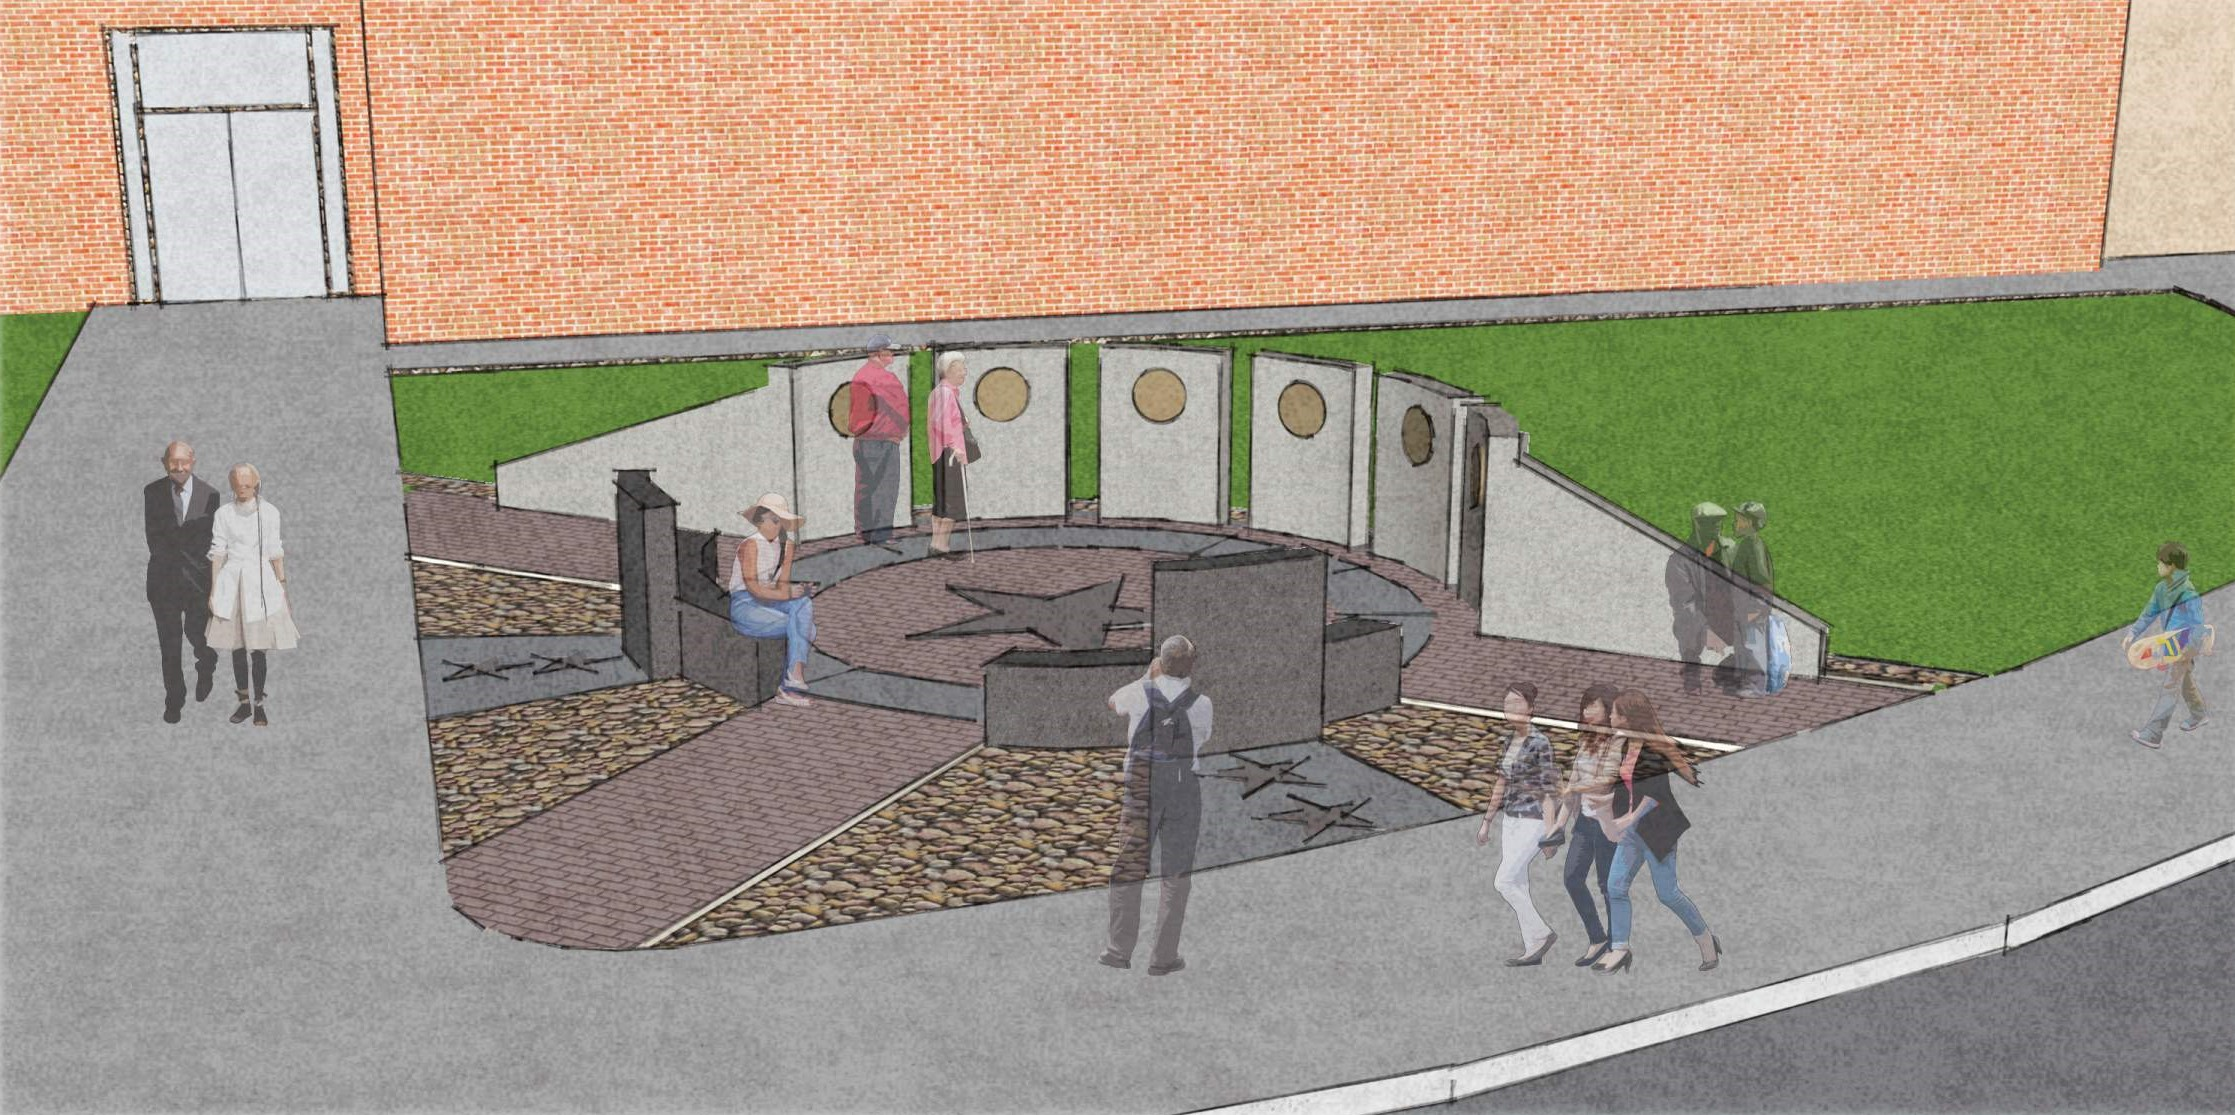 Pictured is the design for a Veterans Memorial at Dover High School – Frank's high school alma mater.